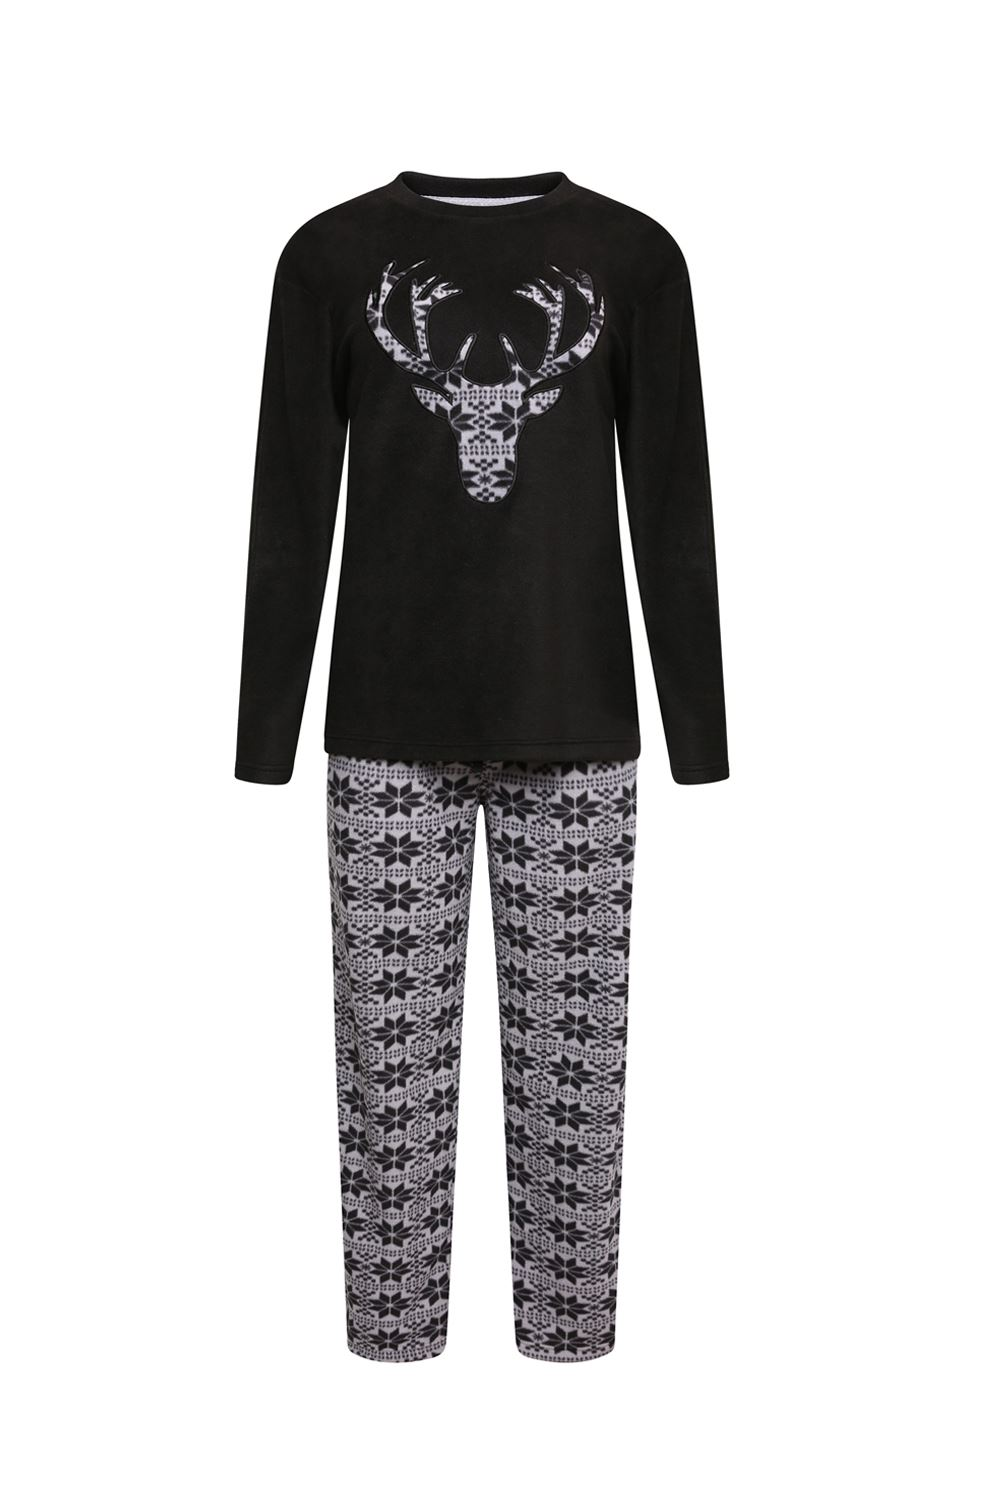 Boys Kids Stag Deer Designer Fairisle Winter Fleece Pyjama Set Warm PJ